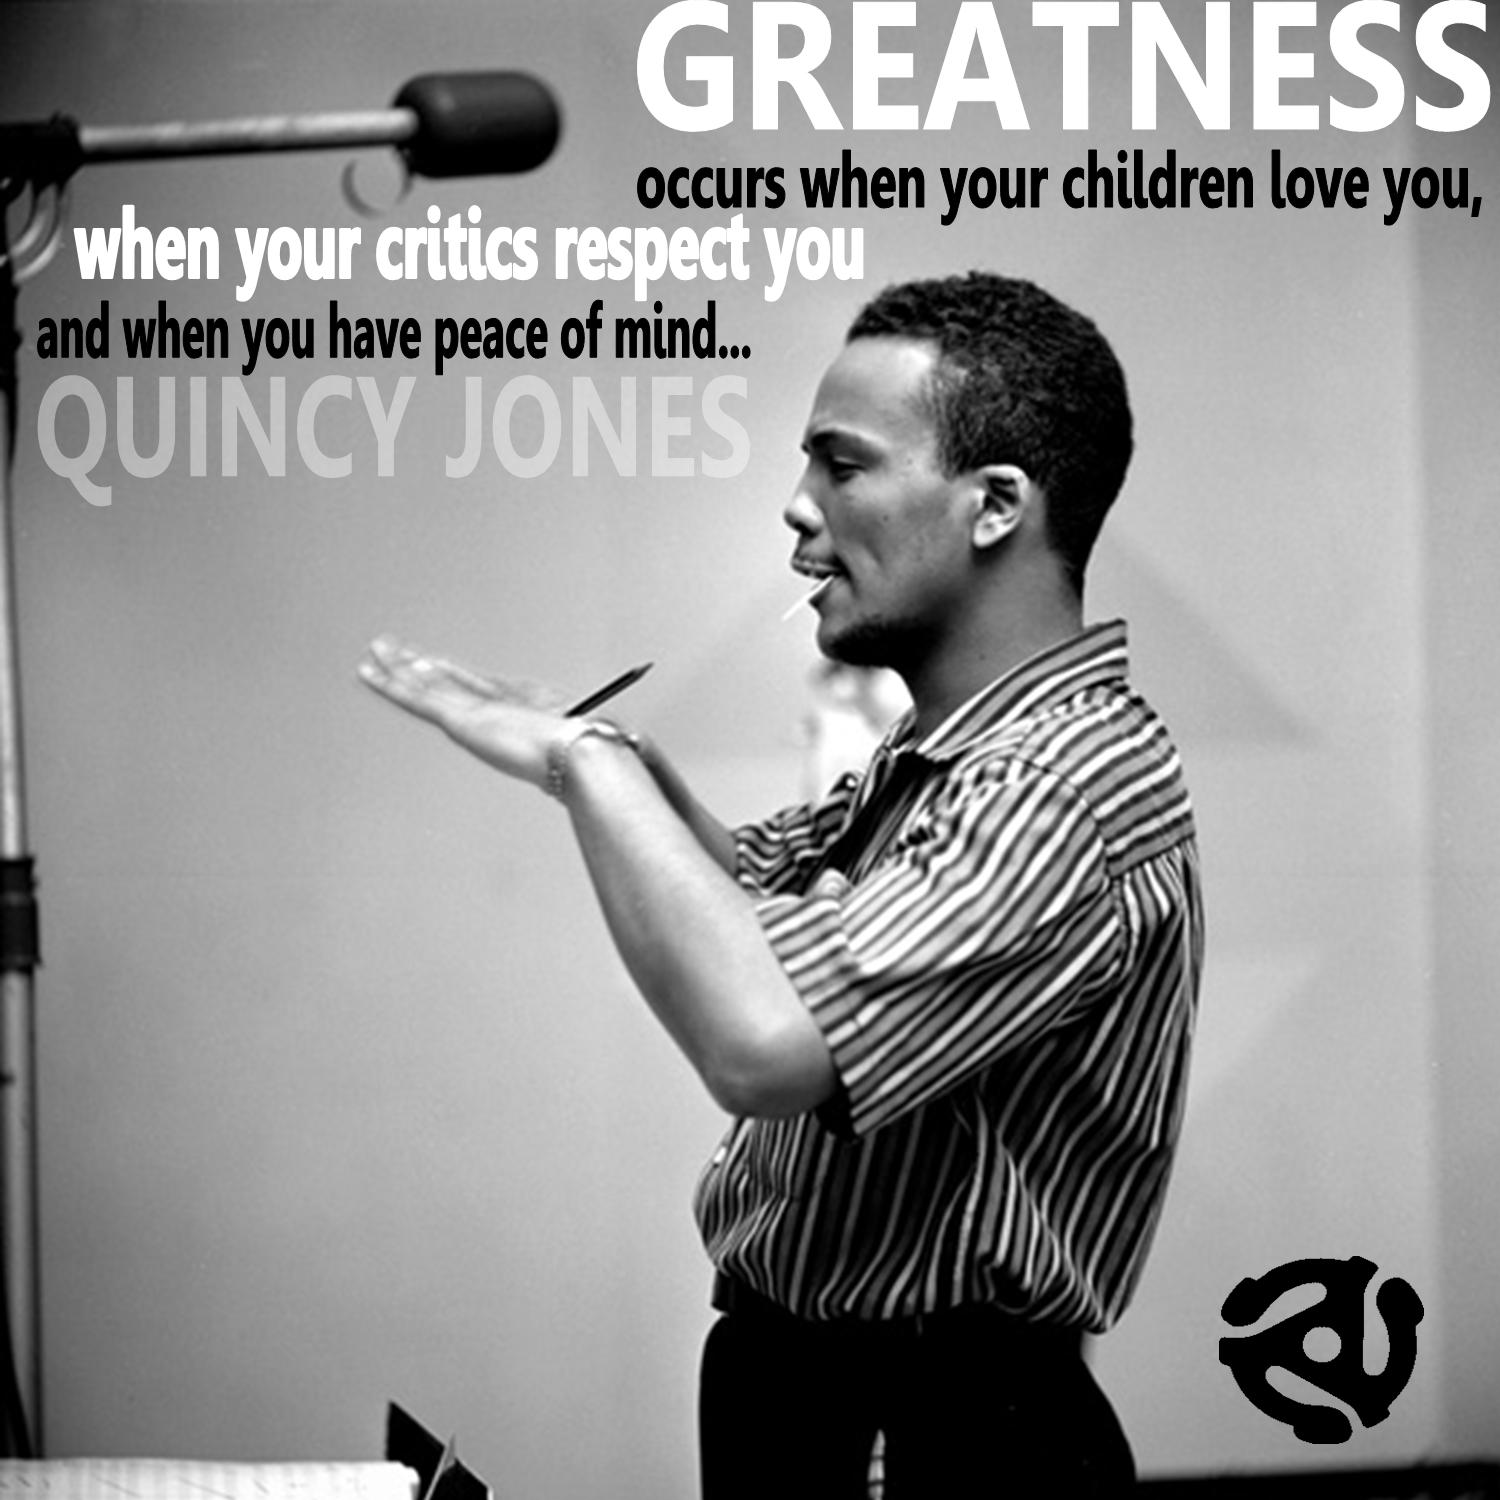 Quincy Jones's quote #2